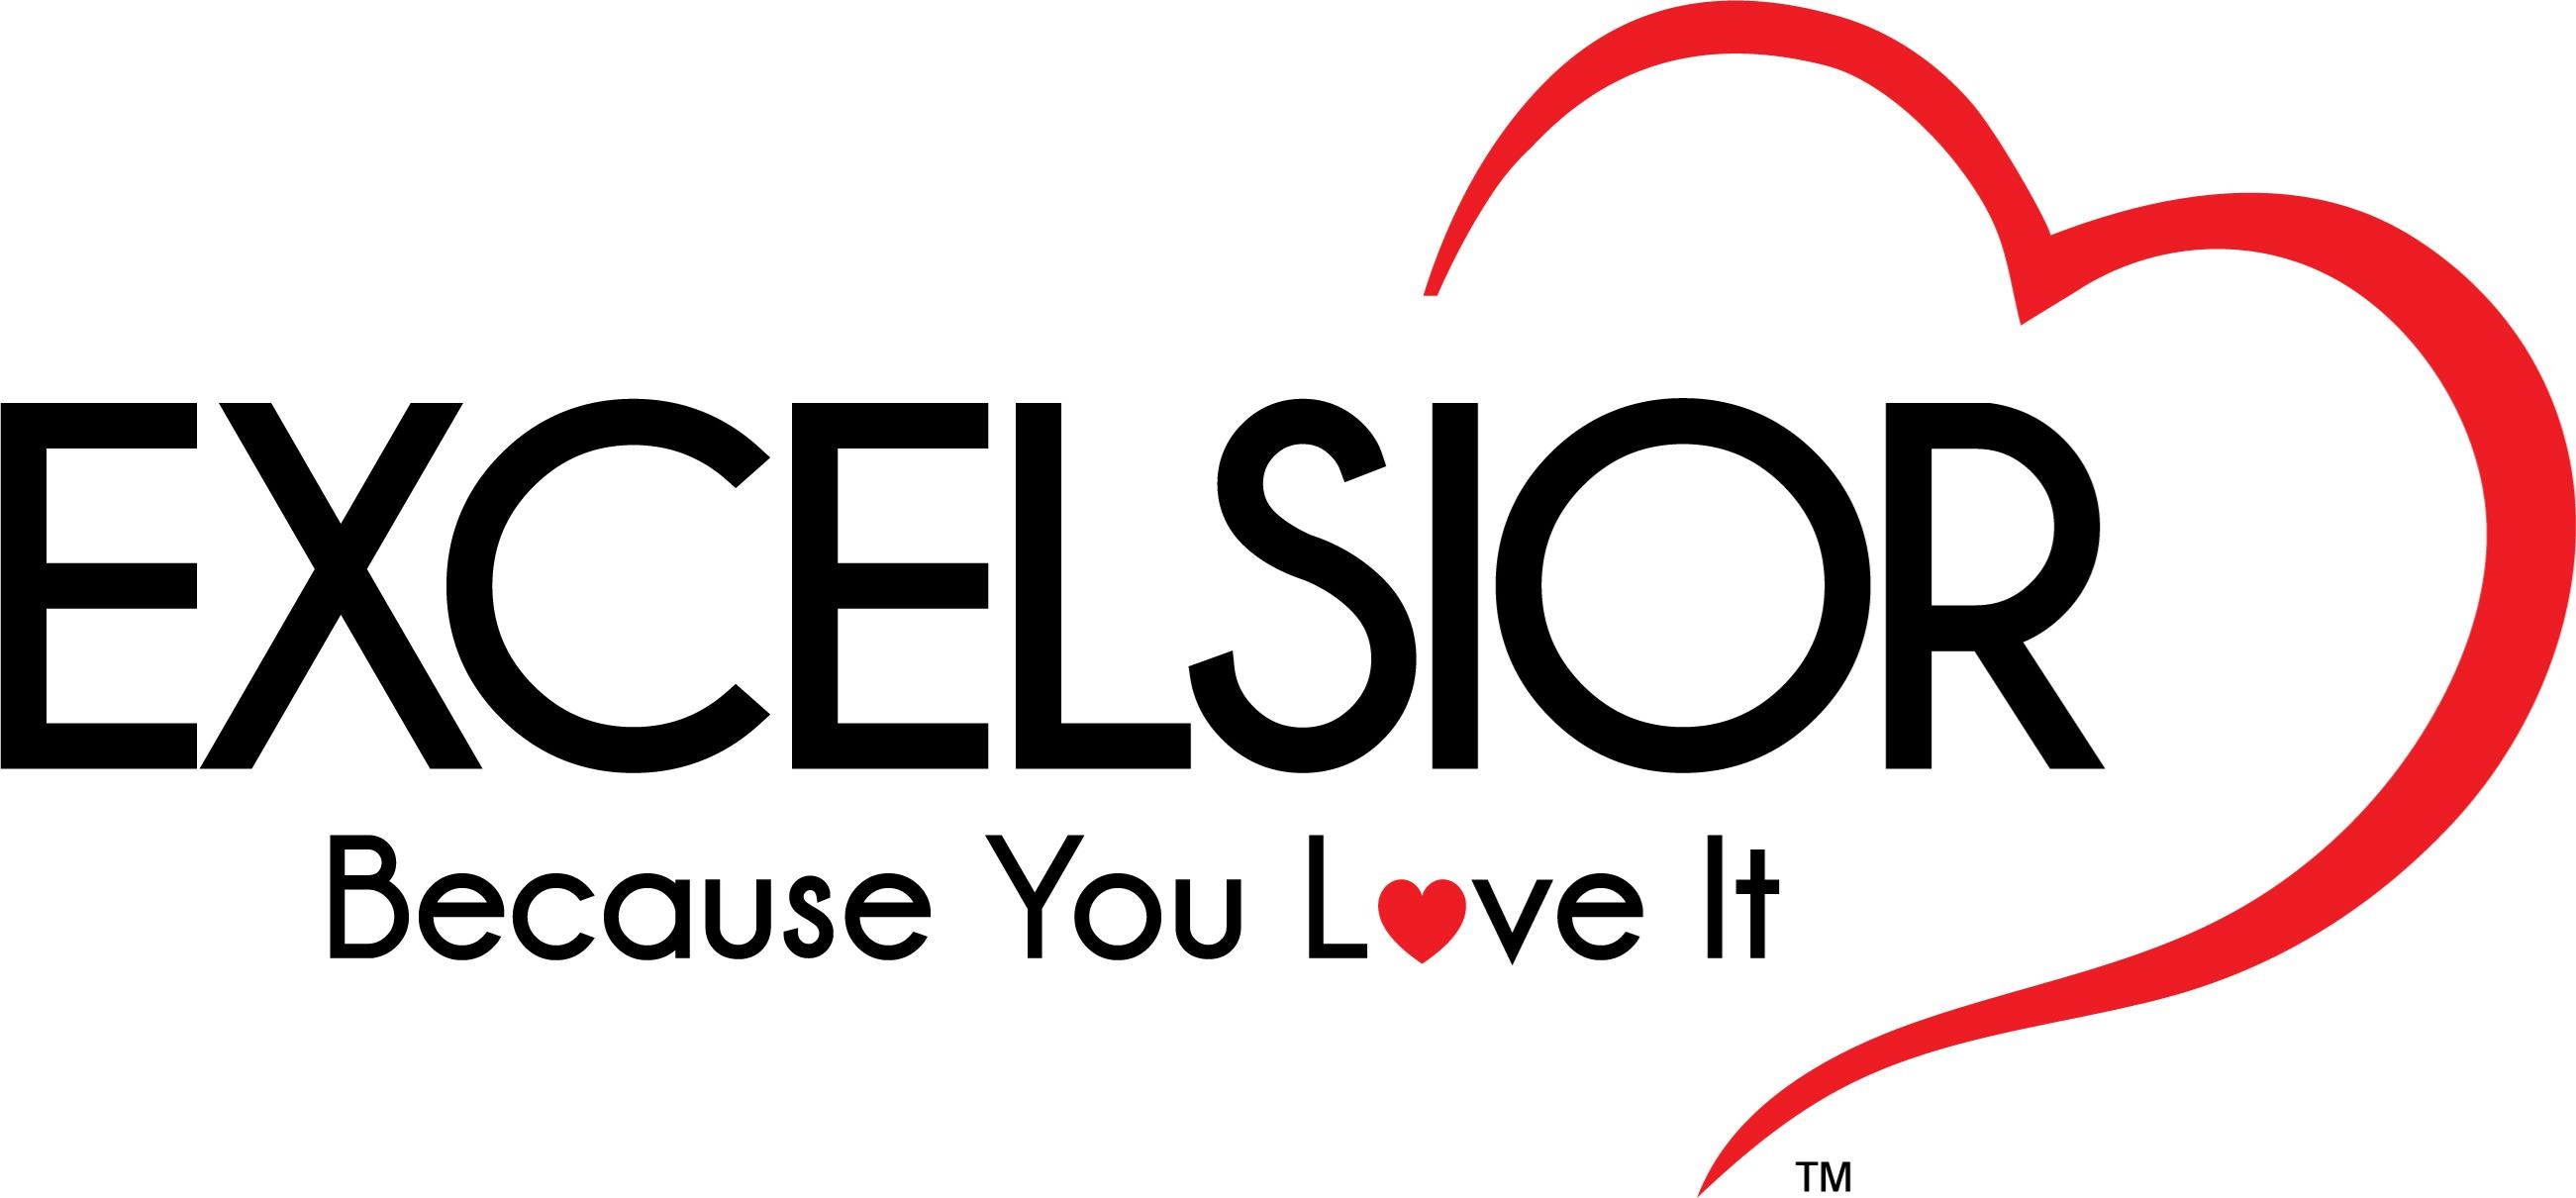 Stationary Furniture Stationary Furniture Protection $7501-$10000 by Excelsior at C. S. Wo & Sons Hawaii